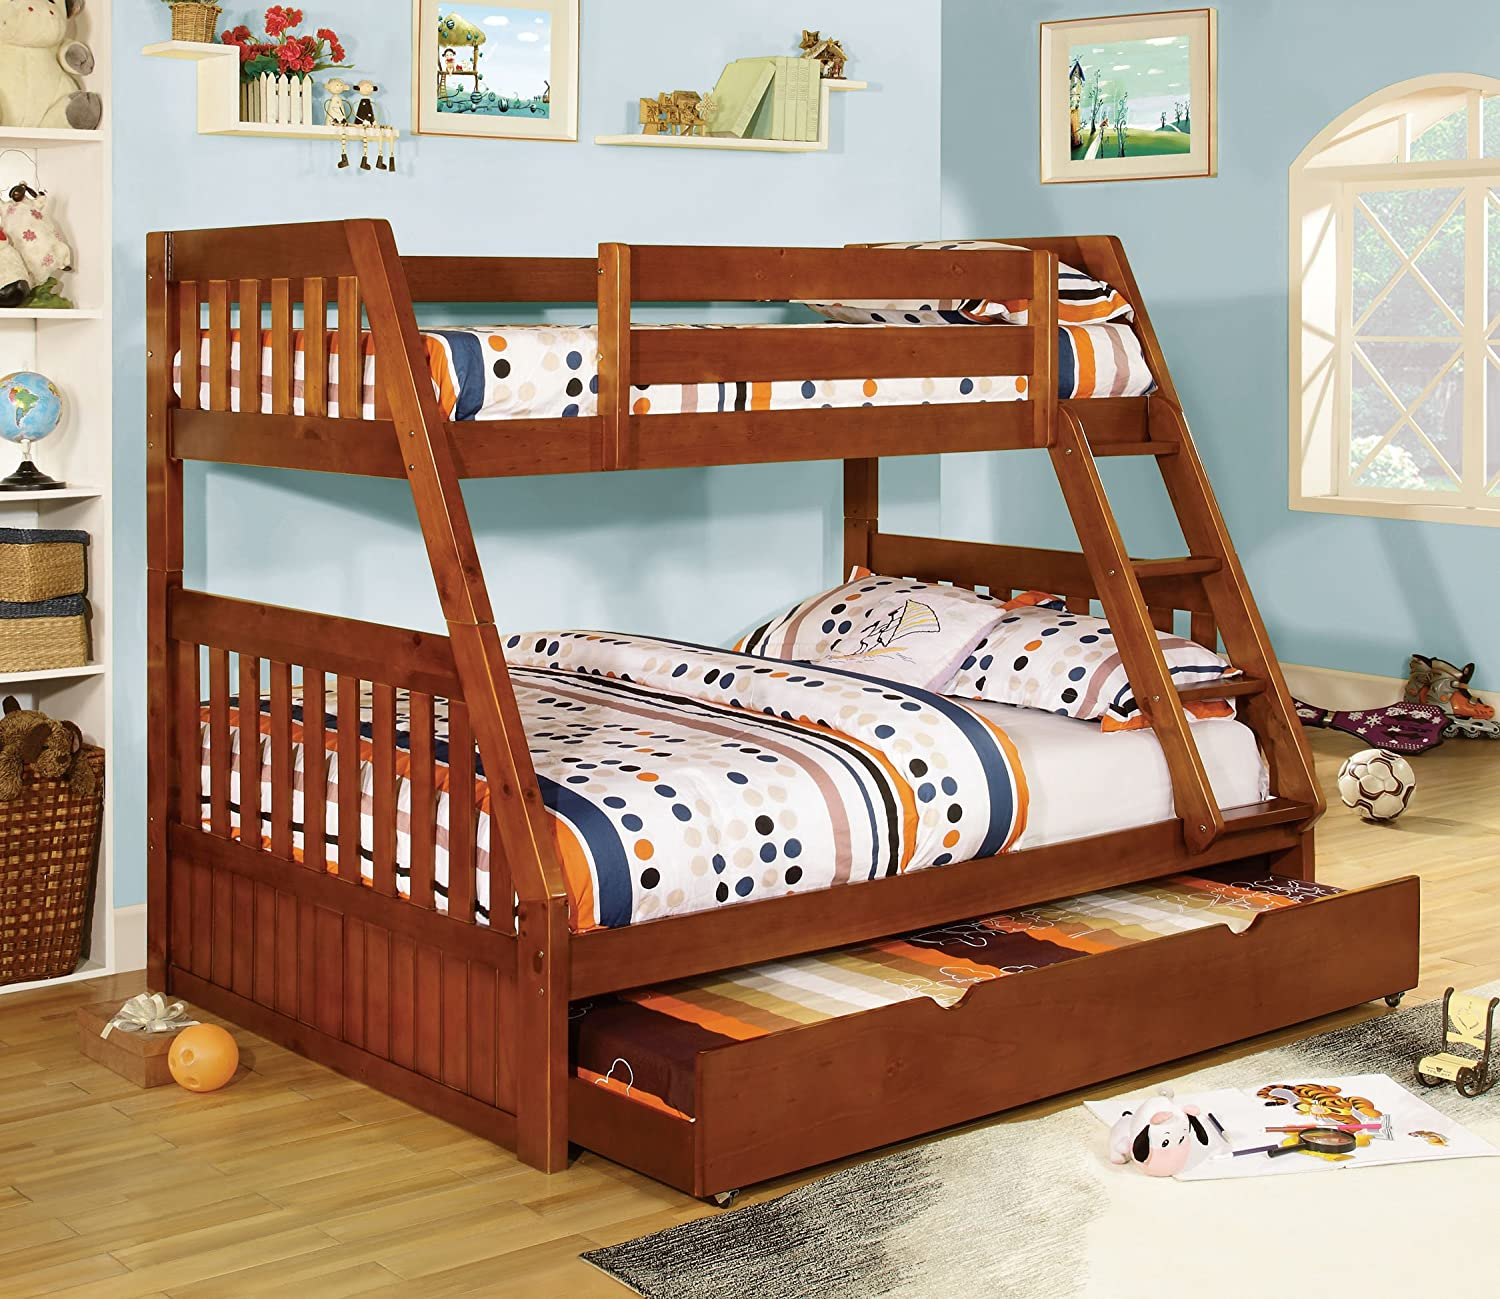 Amazon.com: Furniture of America Grisham Bunk Bed, Twin Over Full ...